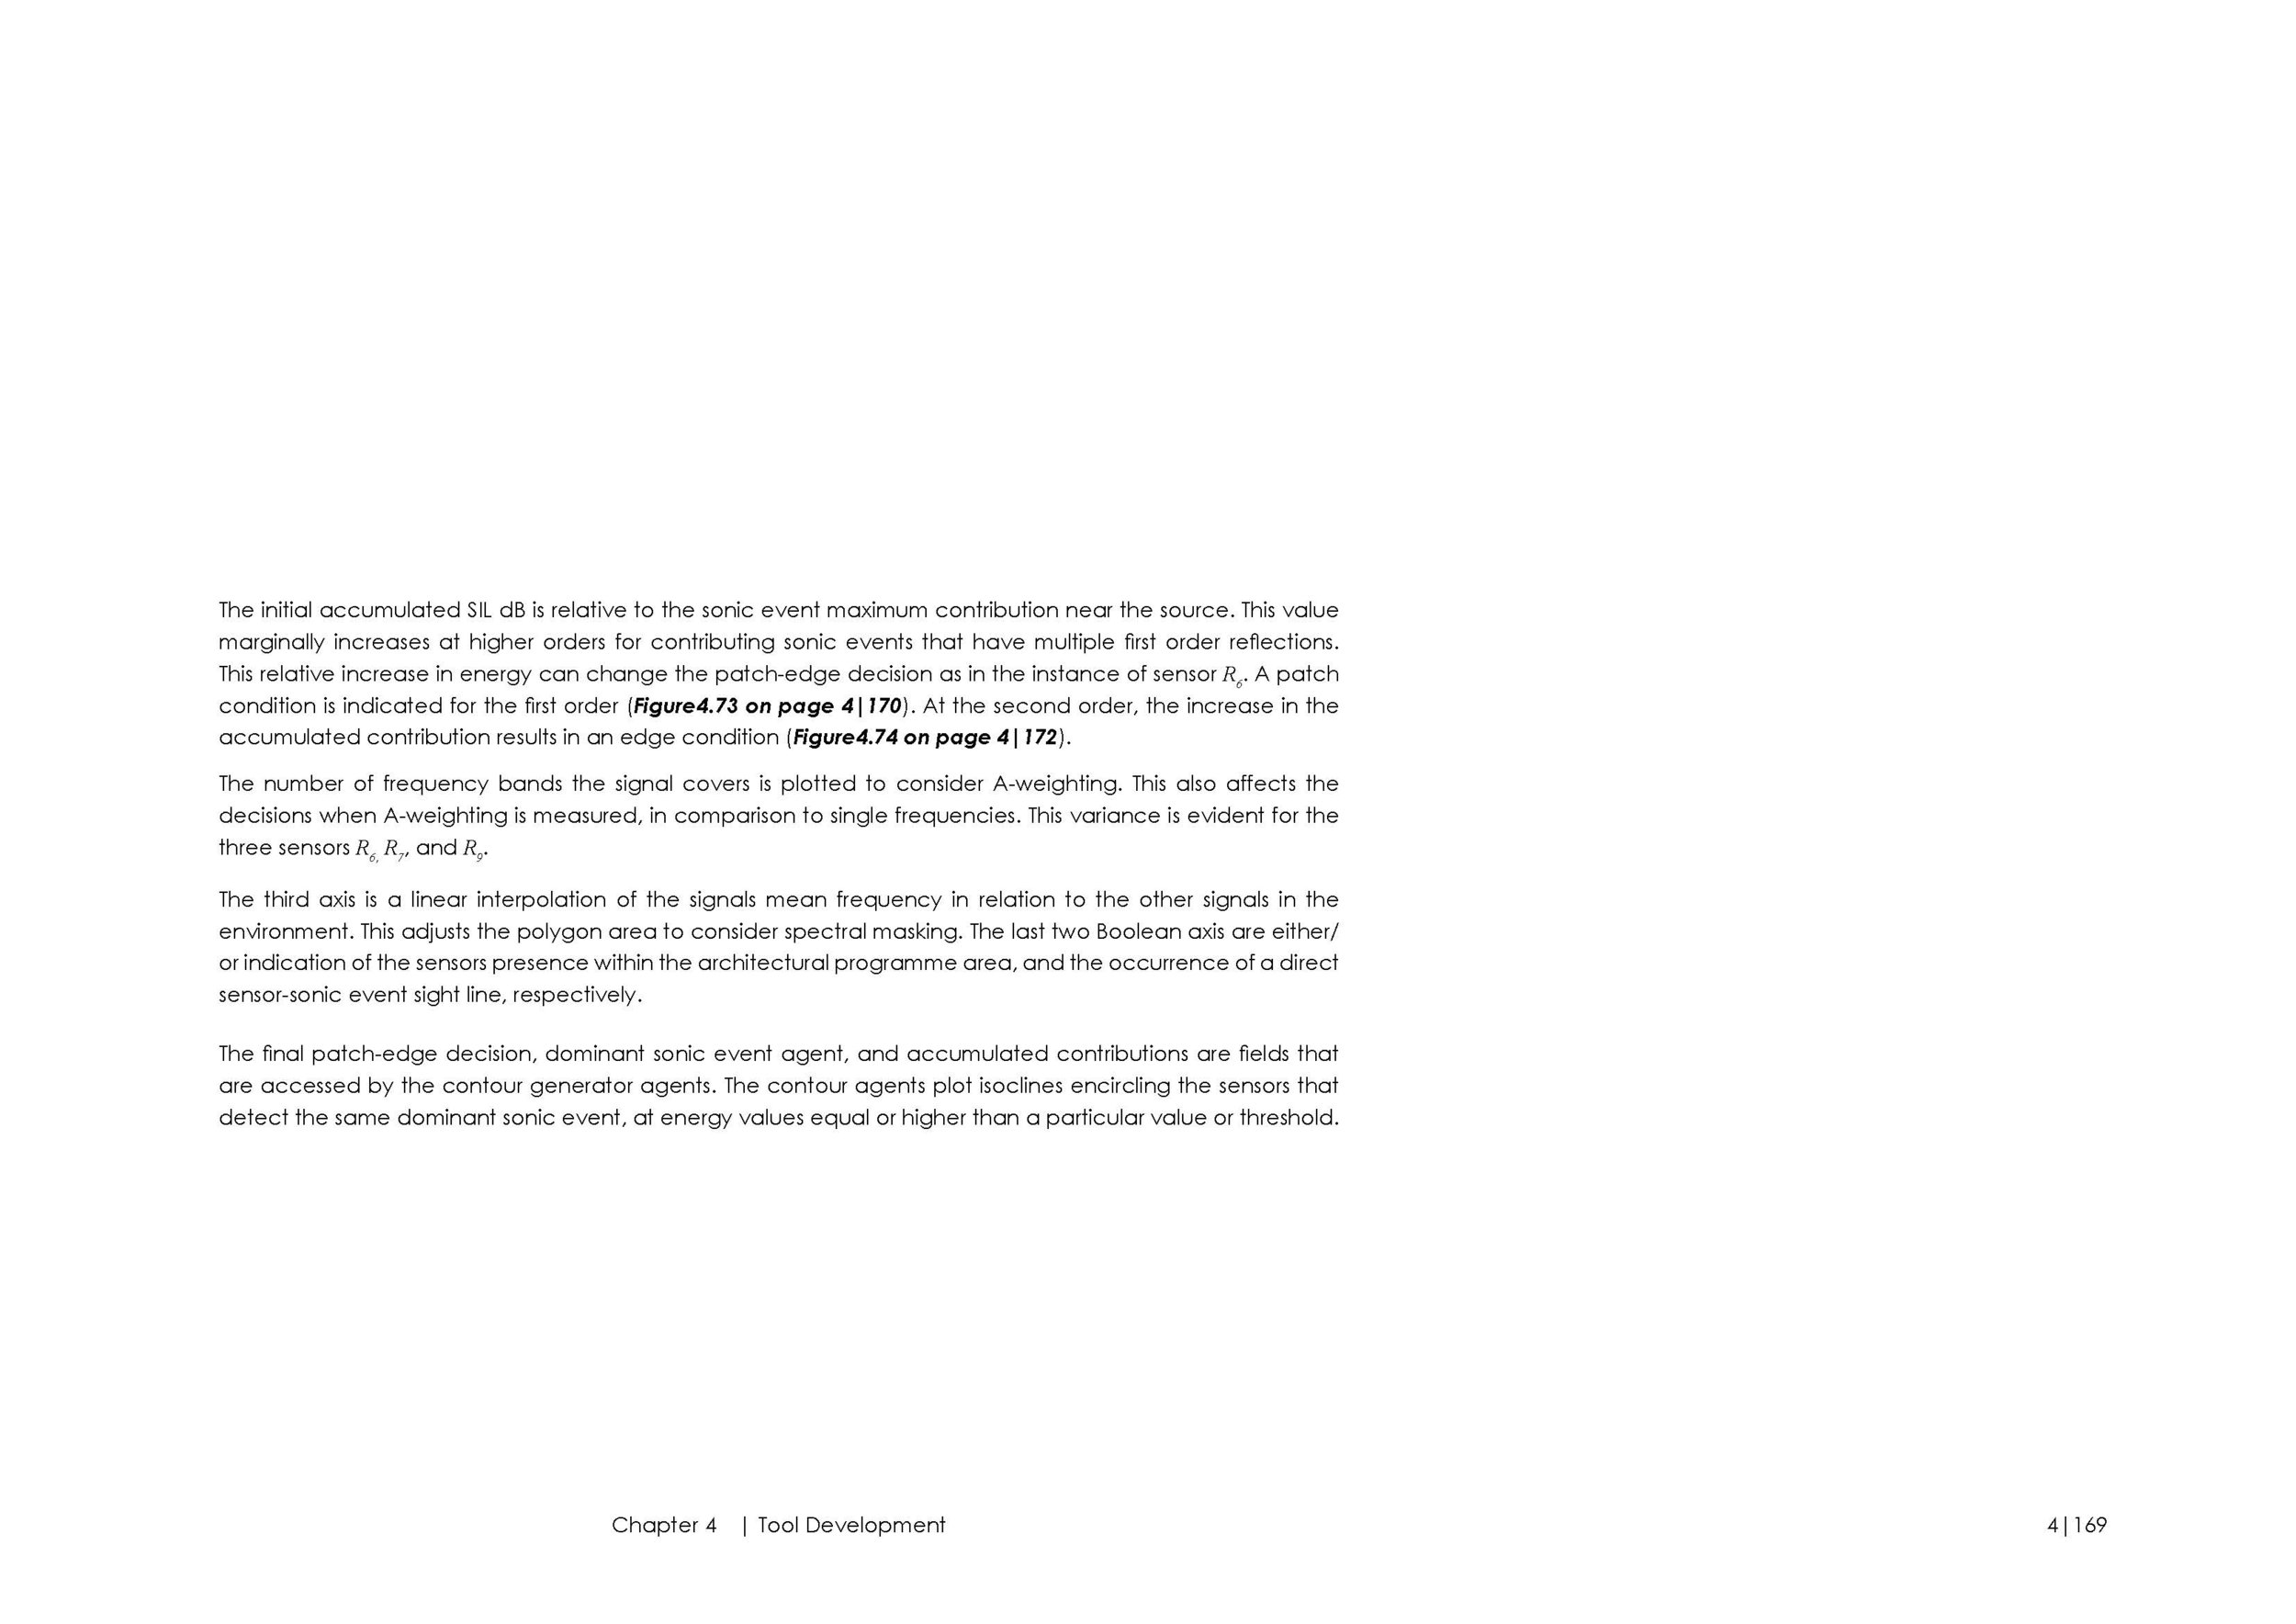 16.03.03_Thesis_01_Interactive_Page_205.jpg